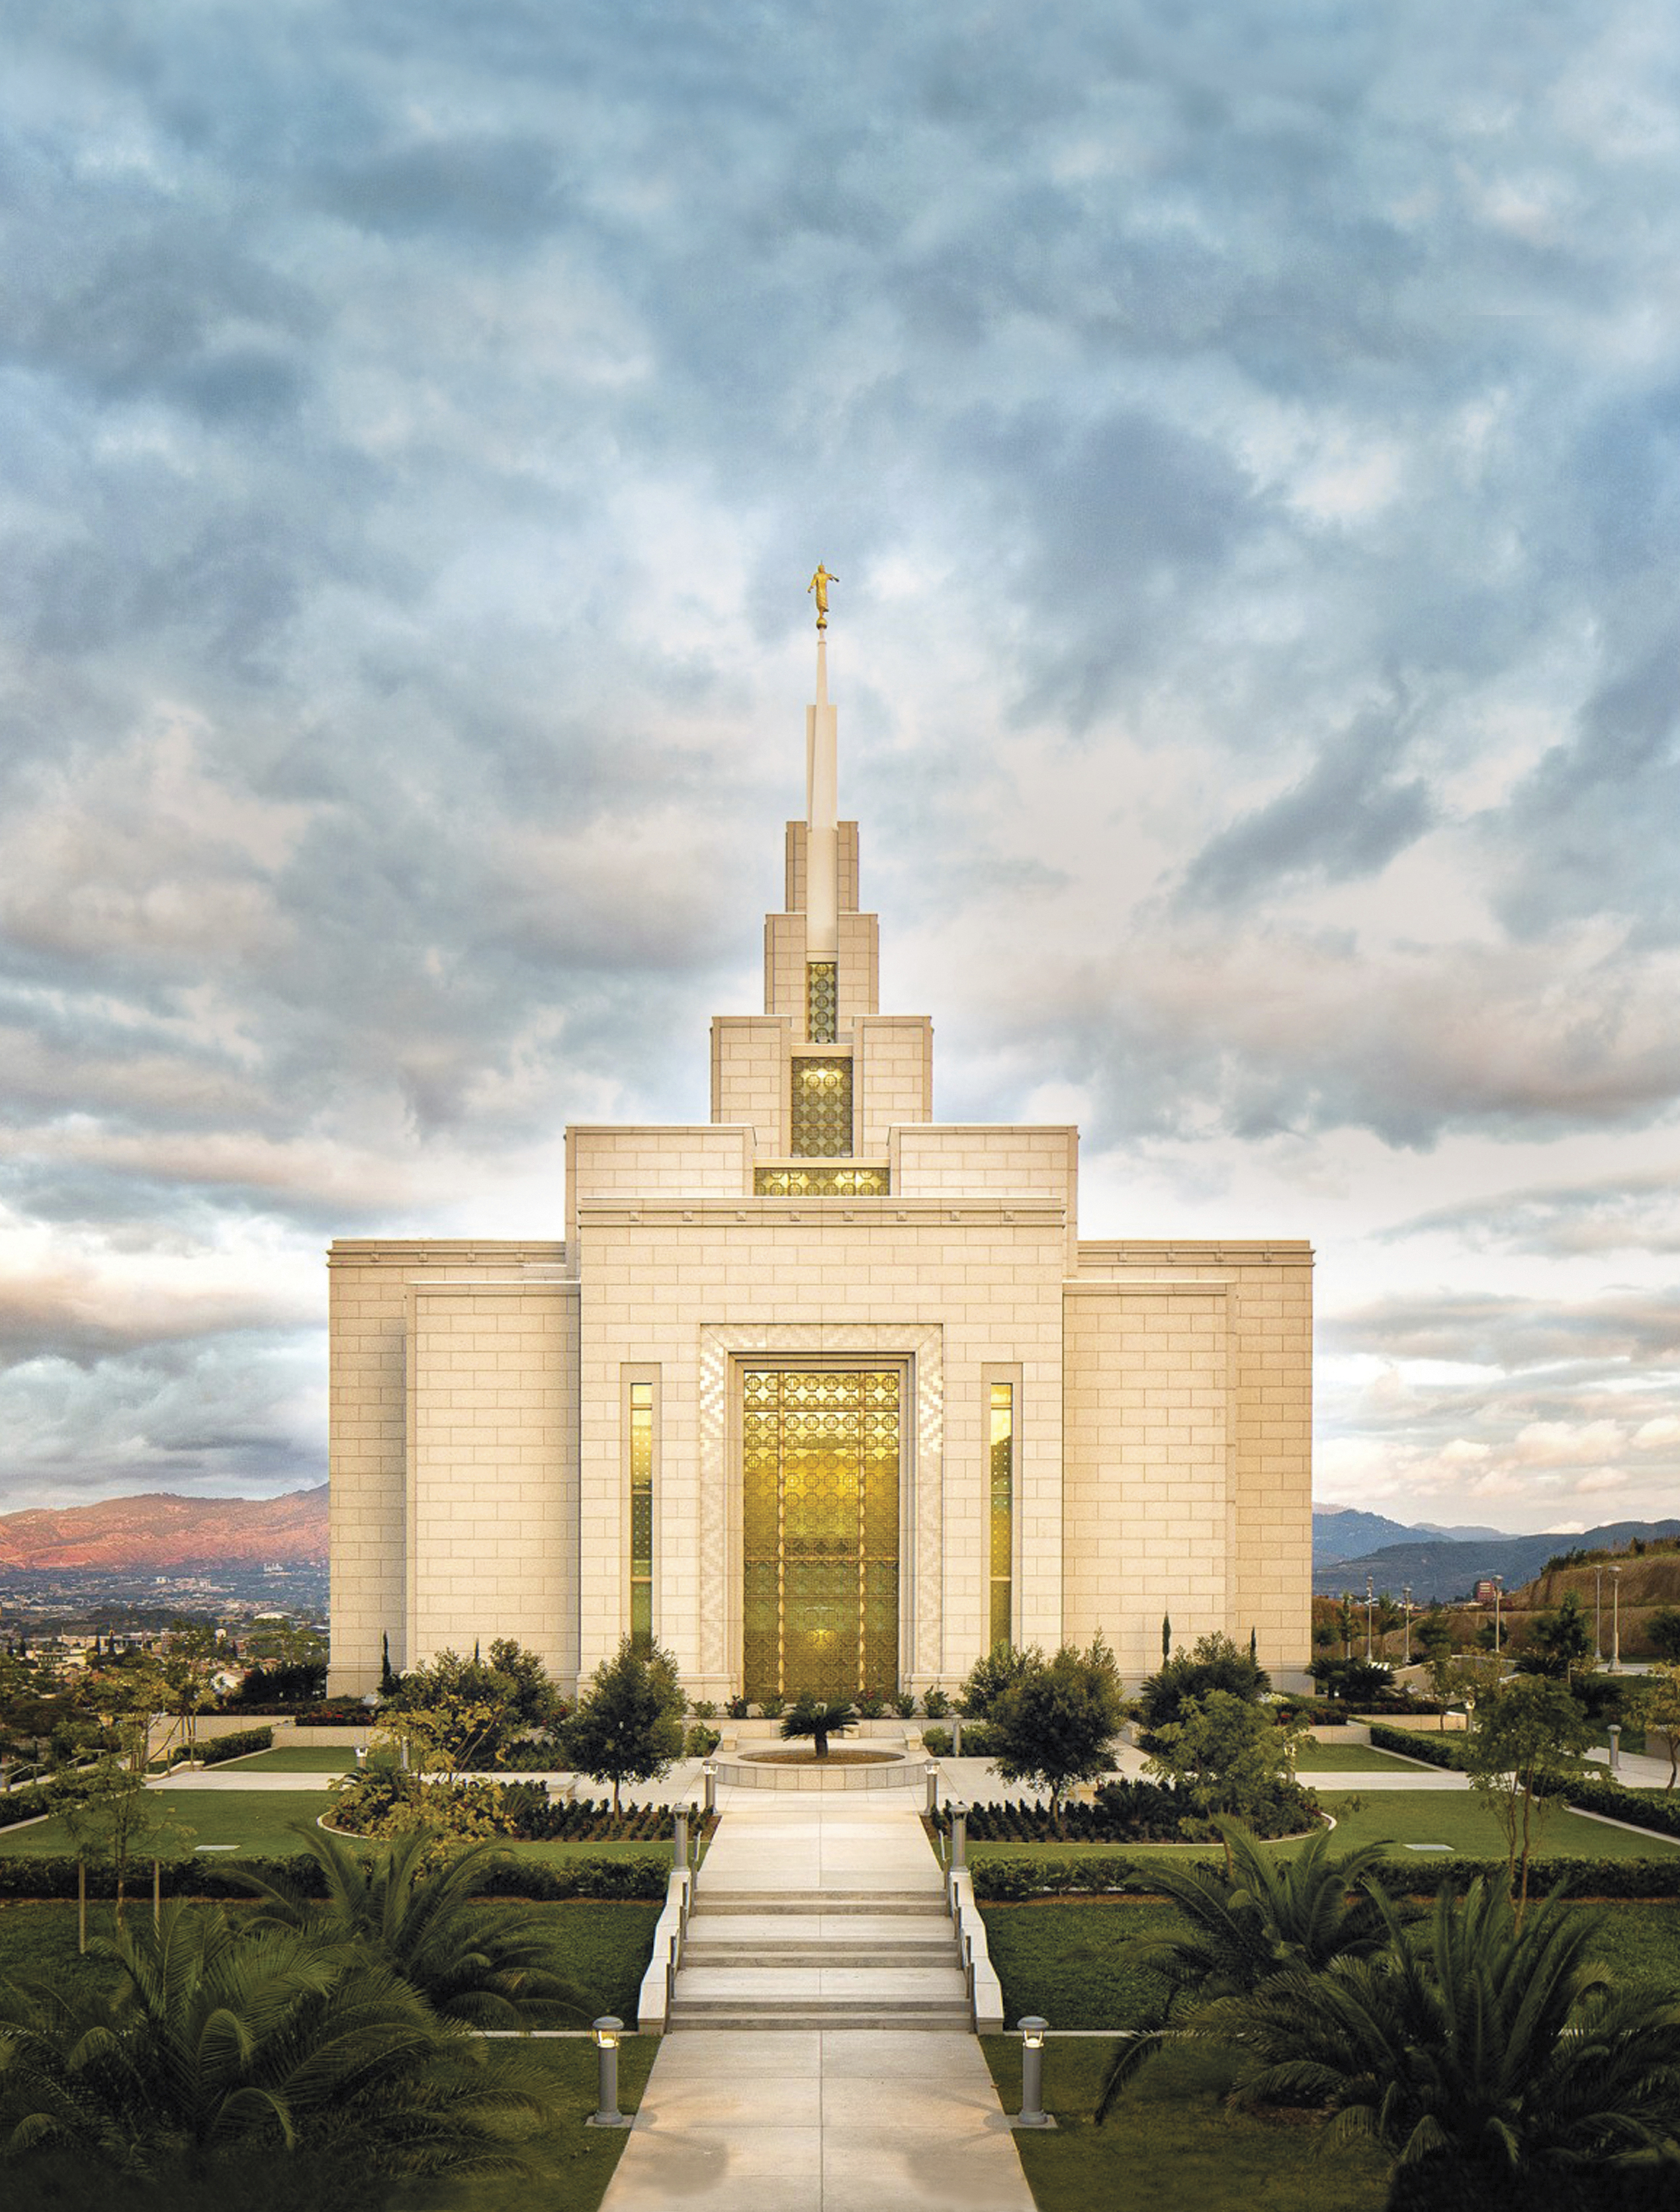 The Tegucigalpa Honduras Temple at sunset, including the entrance and scenery.